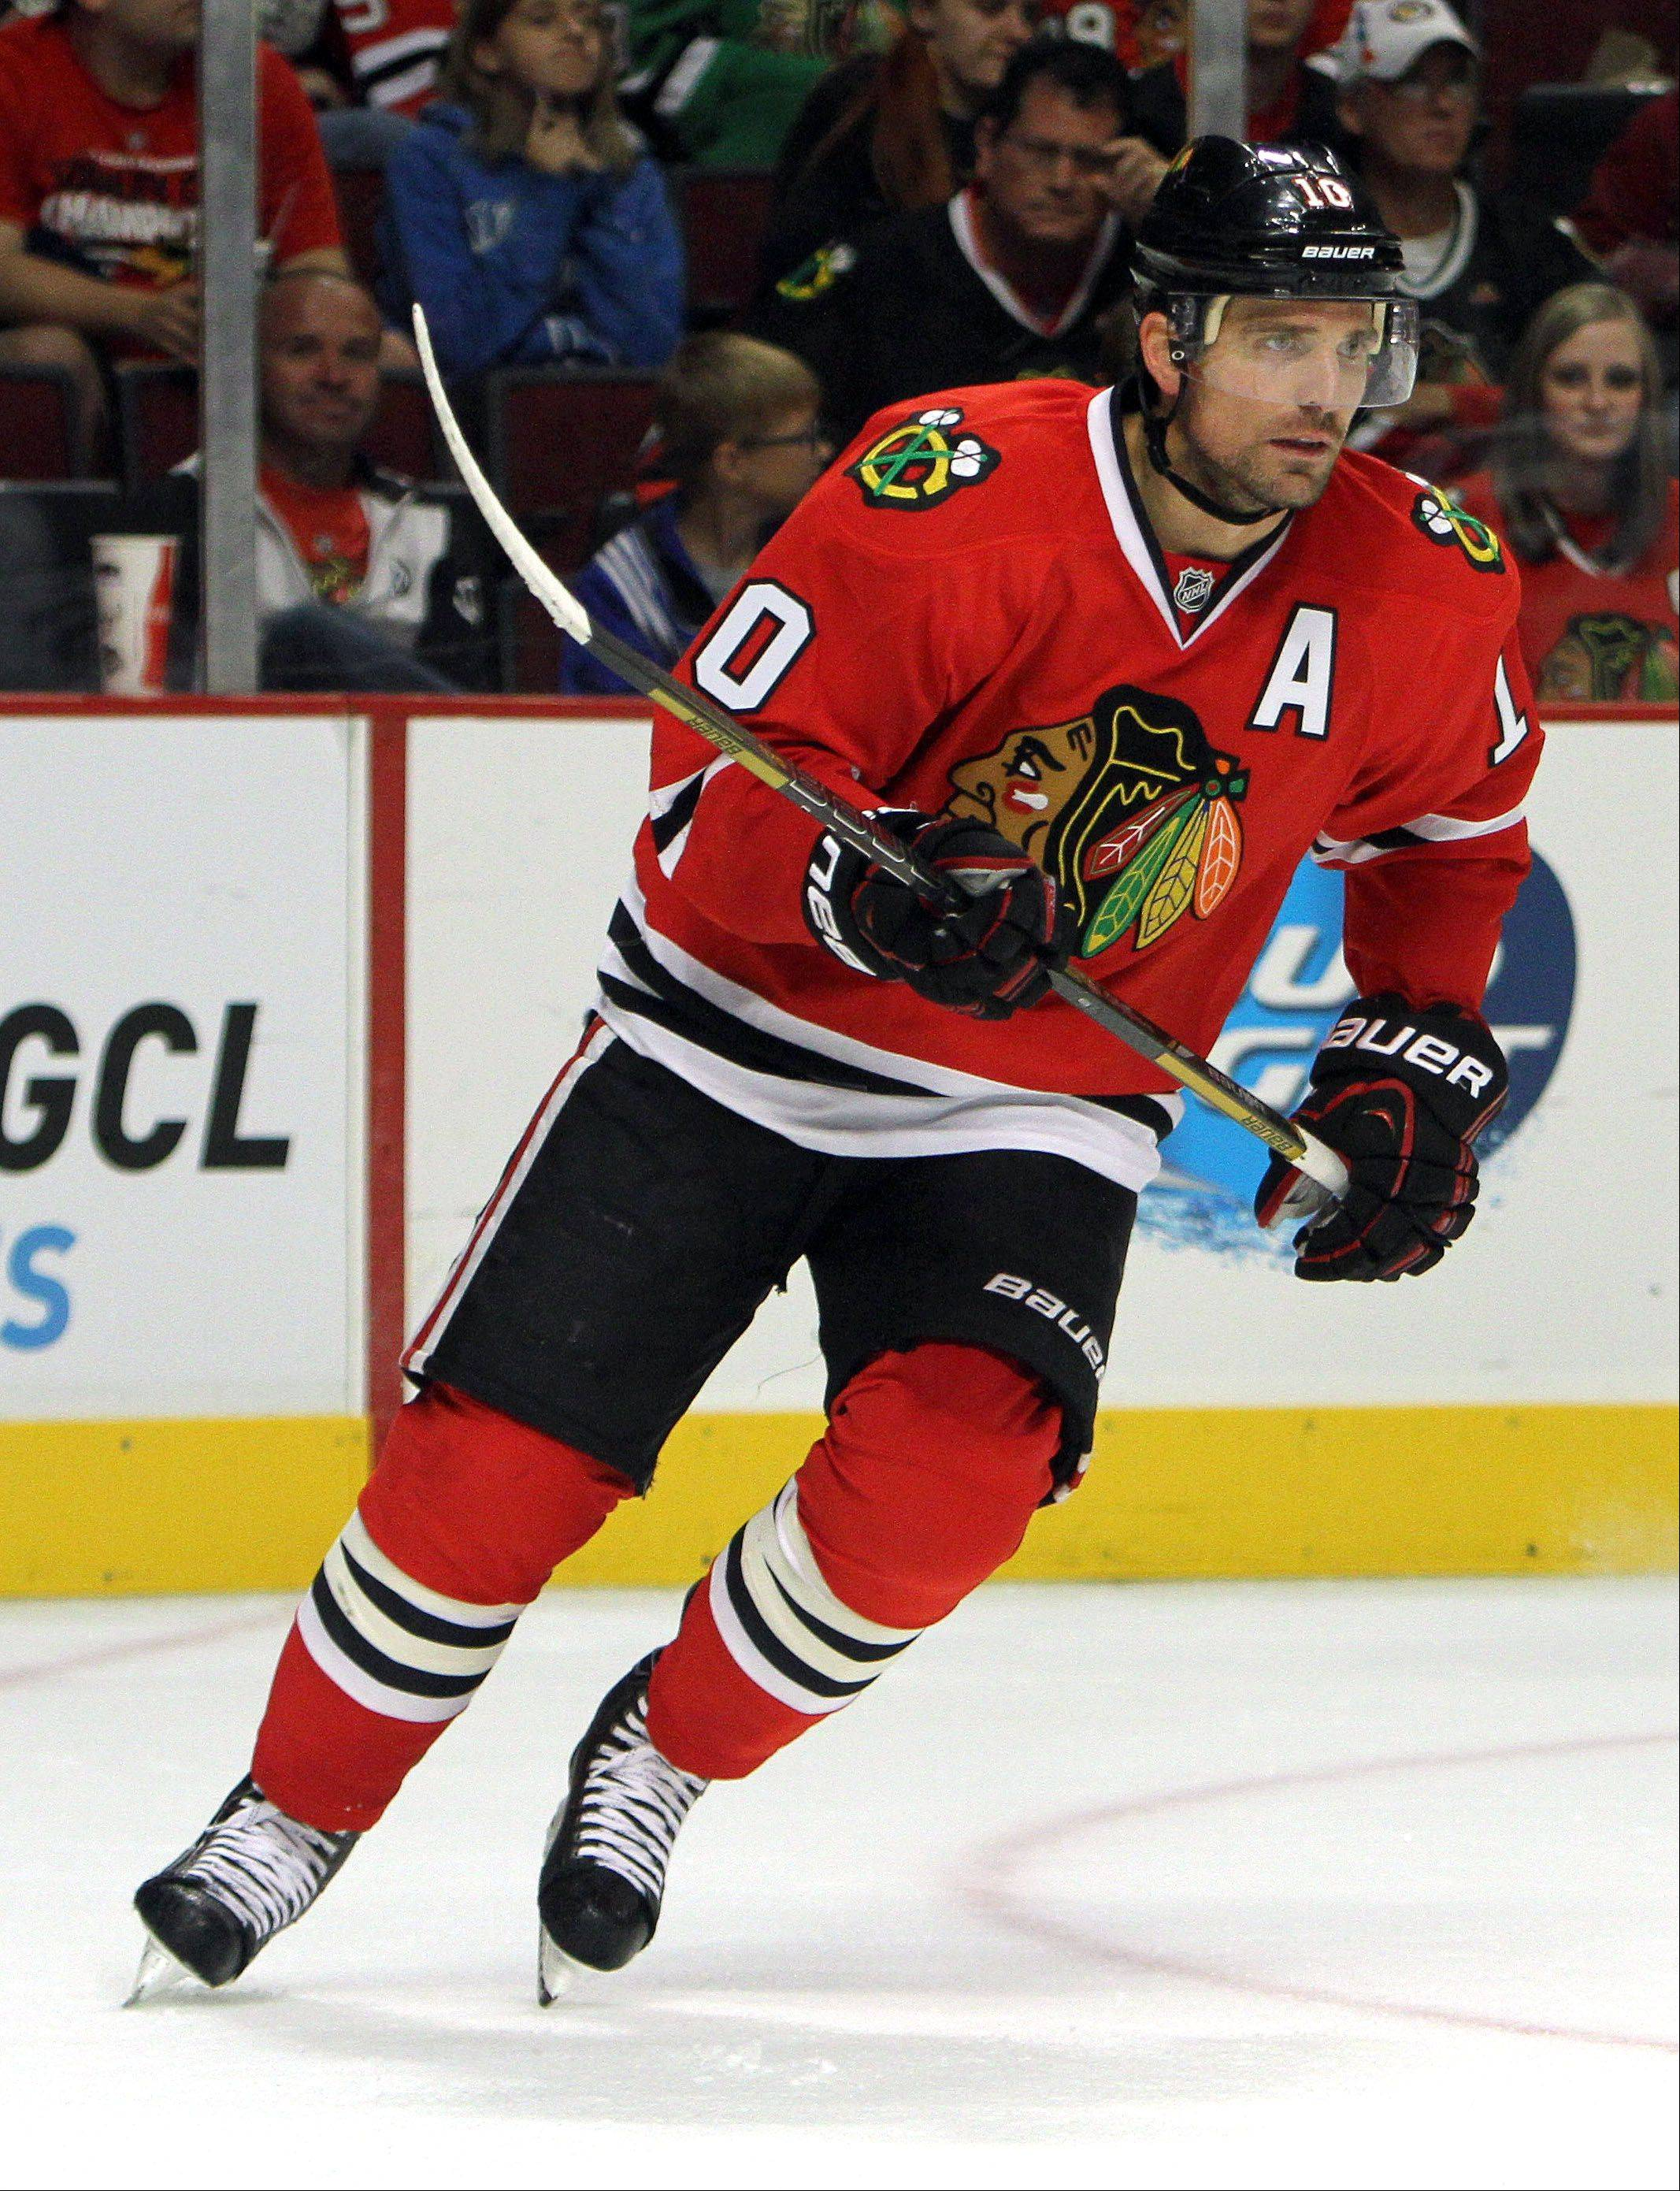 With the birth of his second daughter Sunday, Patrick Sharp, still looking for his first goal, says he has a clear mind and is ready to get back to hockey.